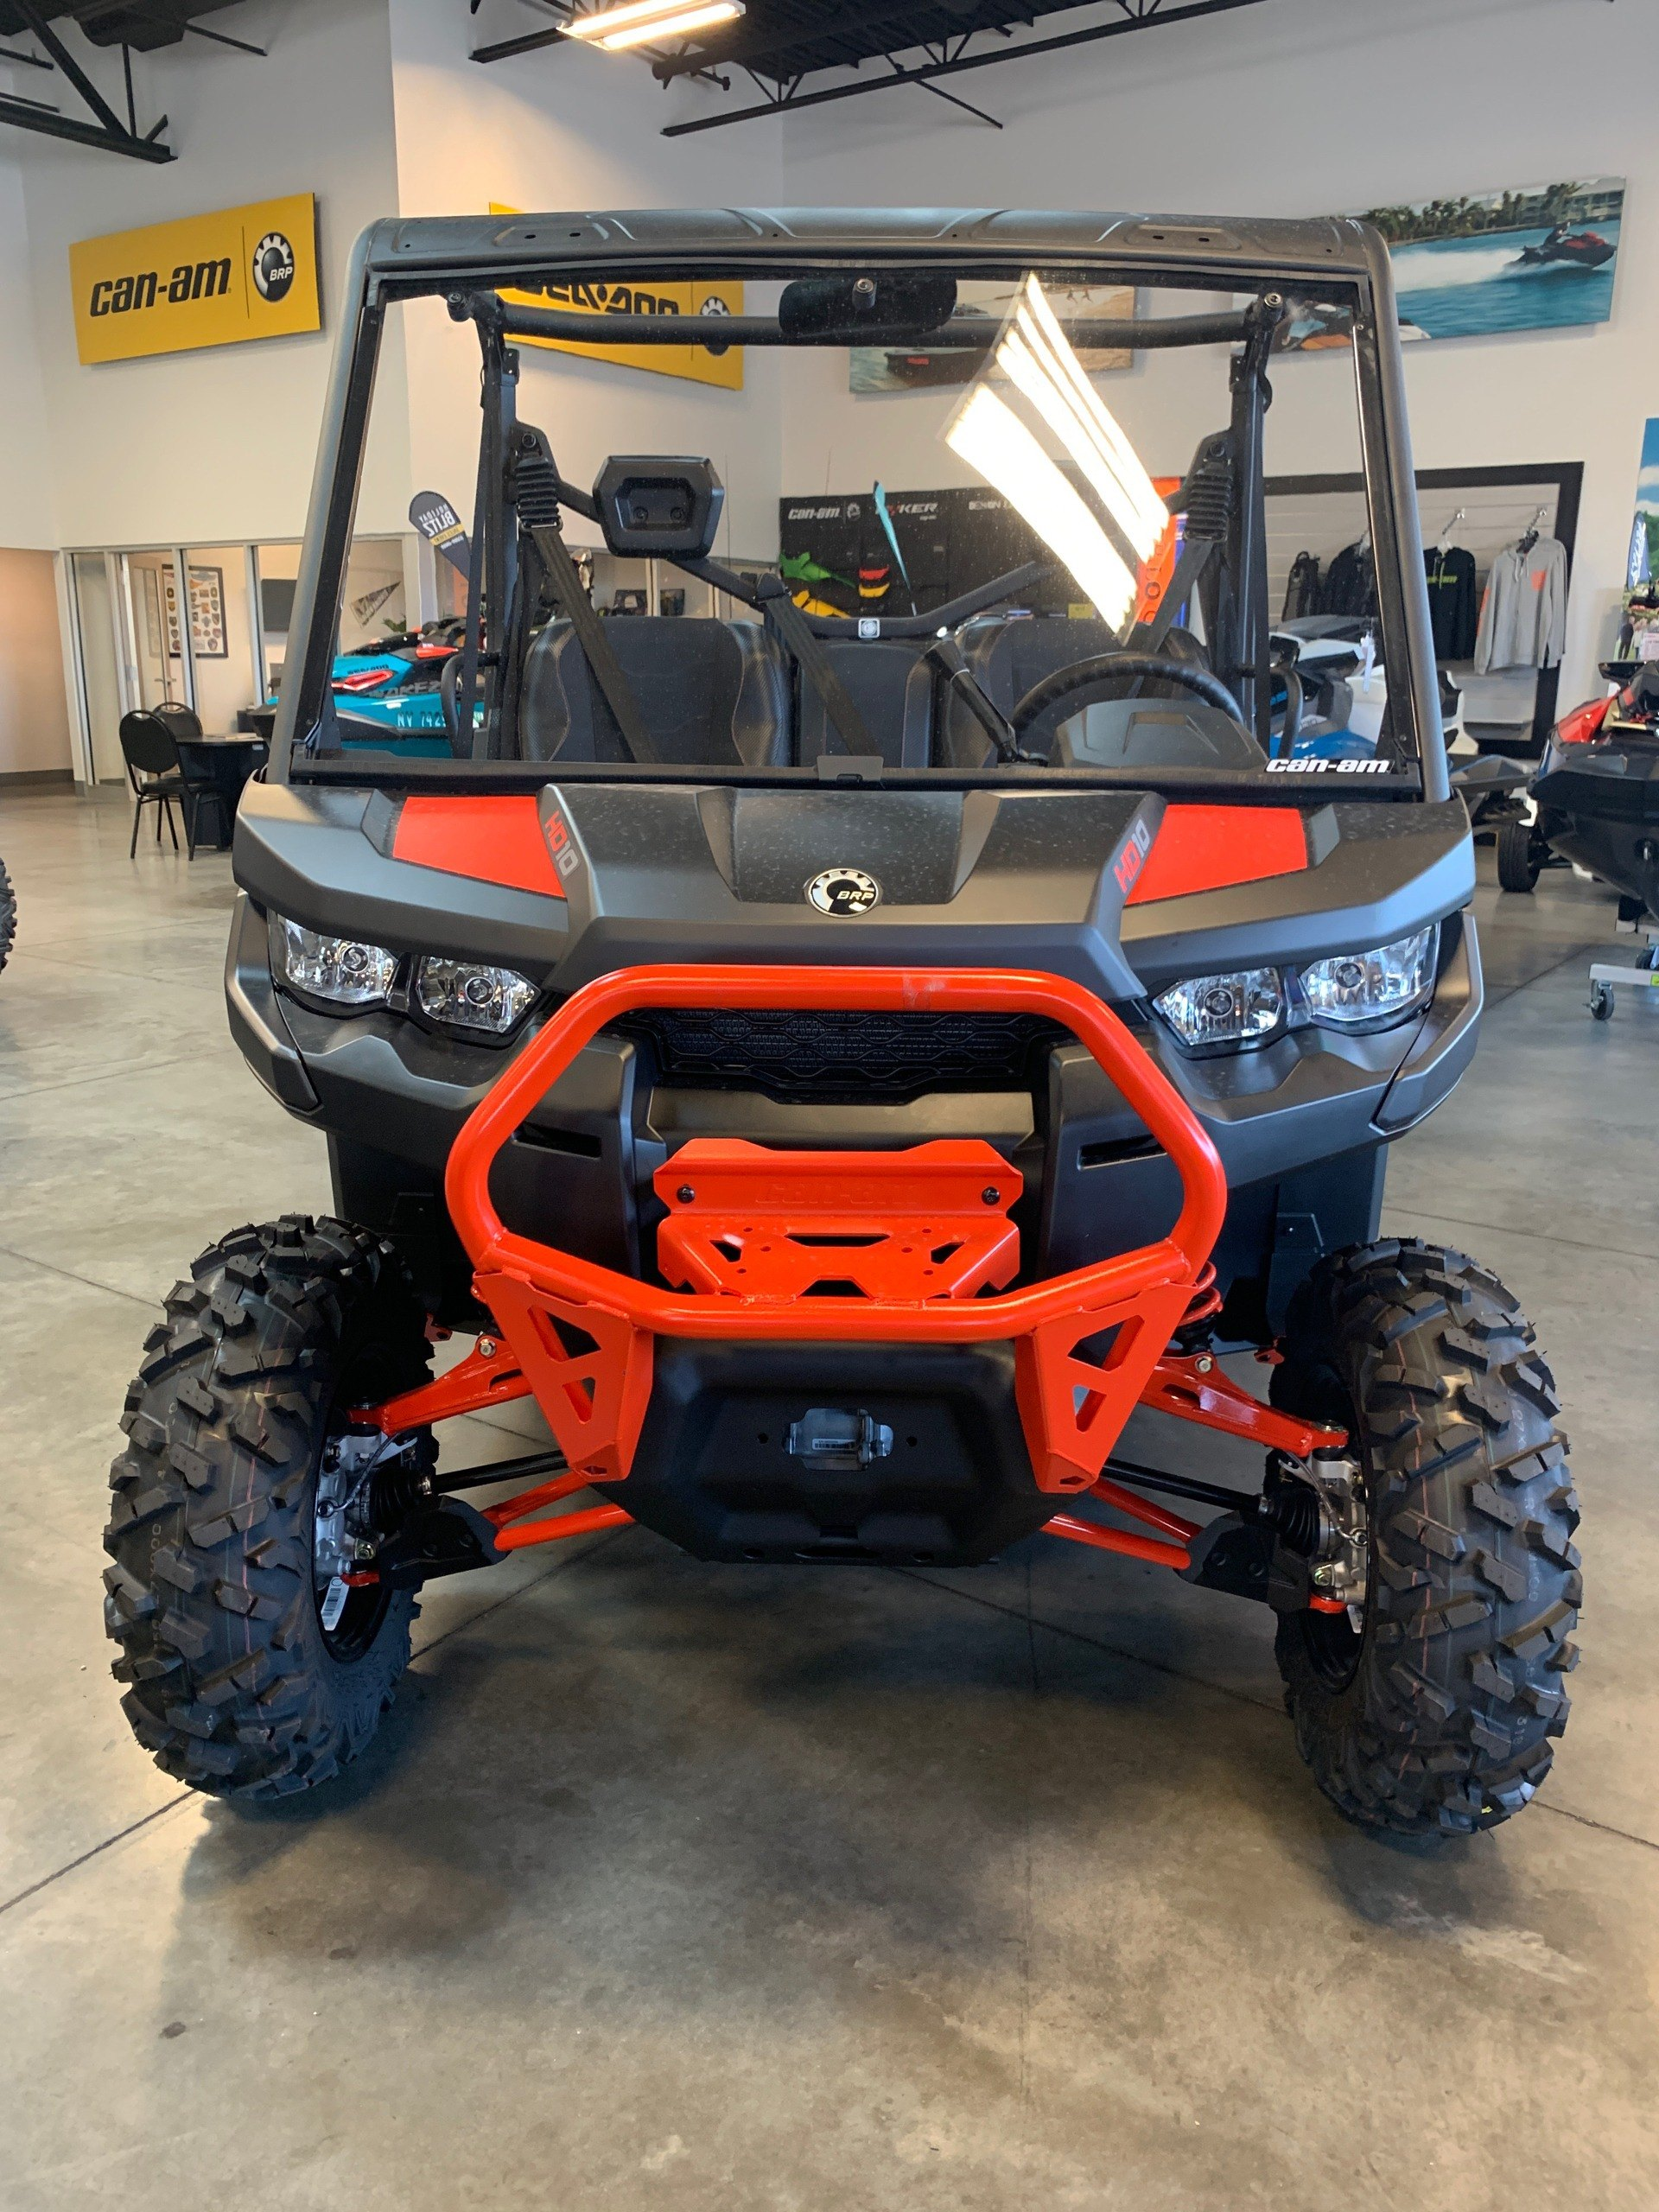 2019 Can-Am Defender XT-P HD10 in Las Vegas, Nevada - Photo 2